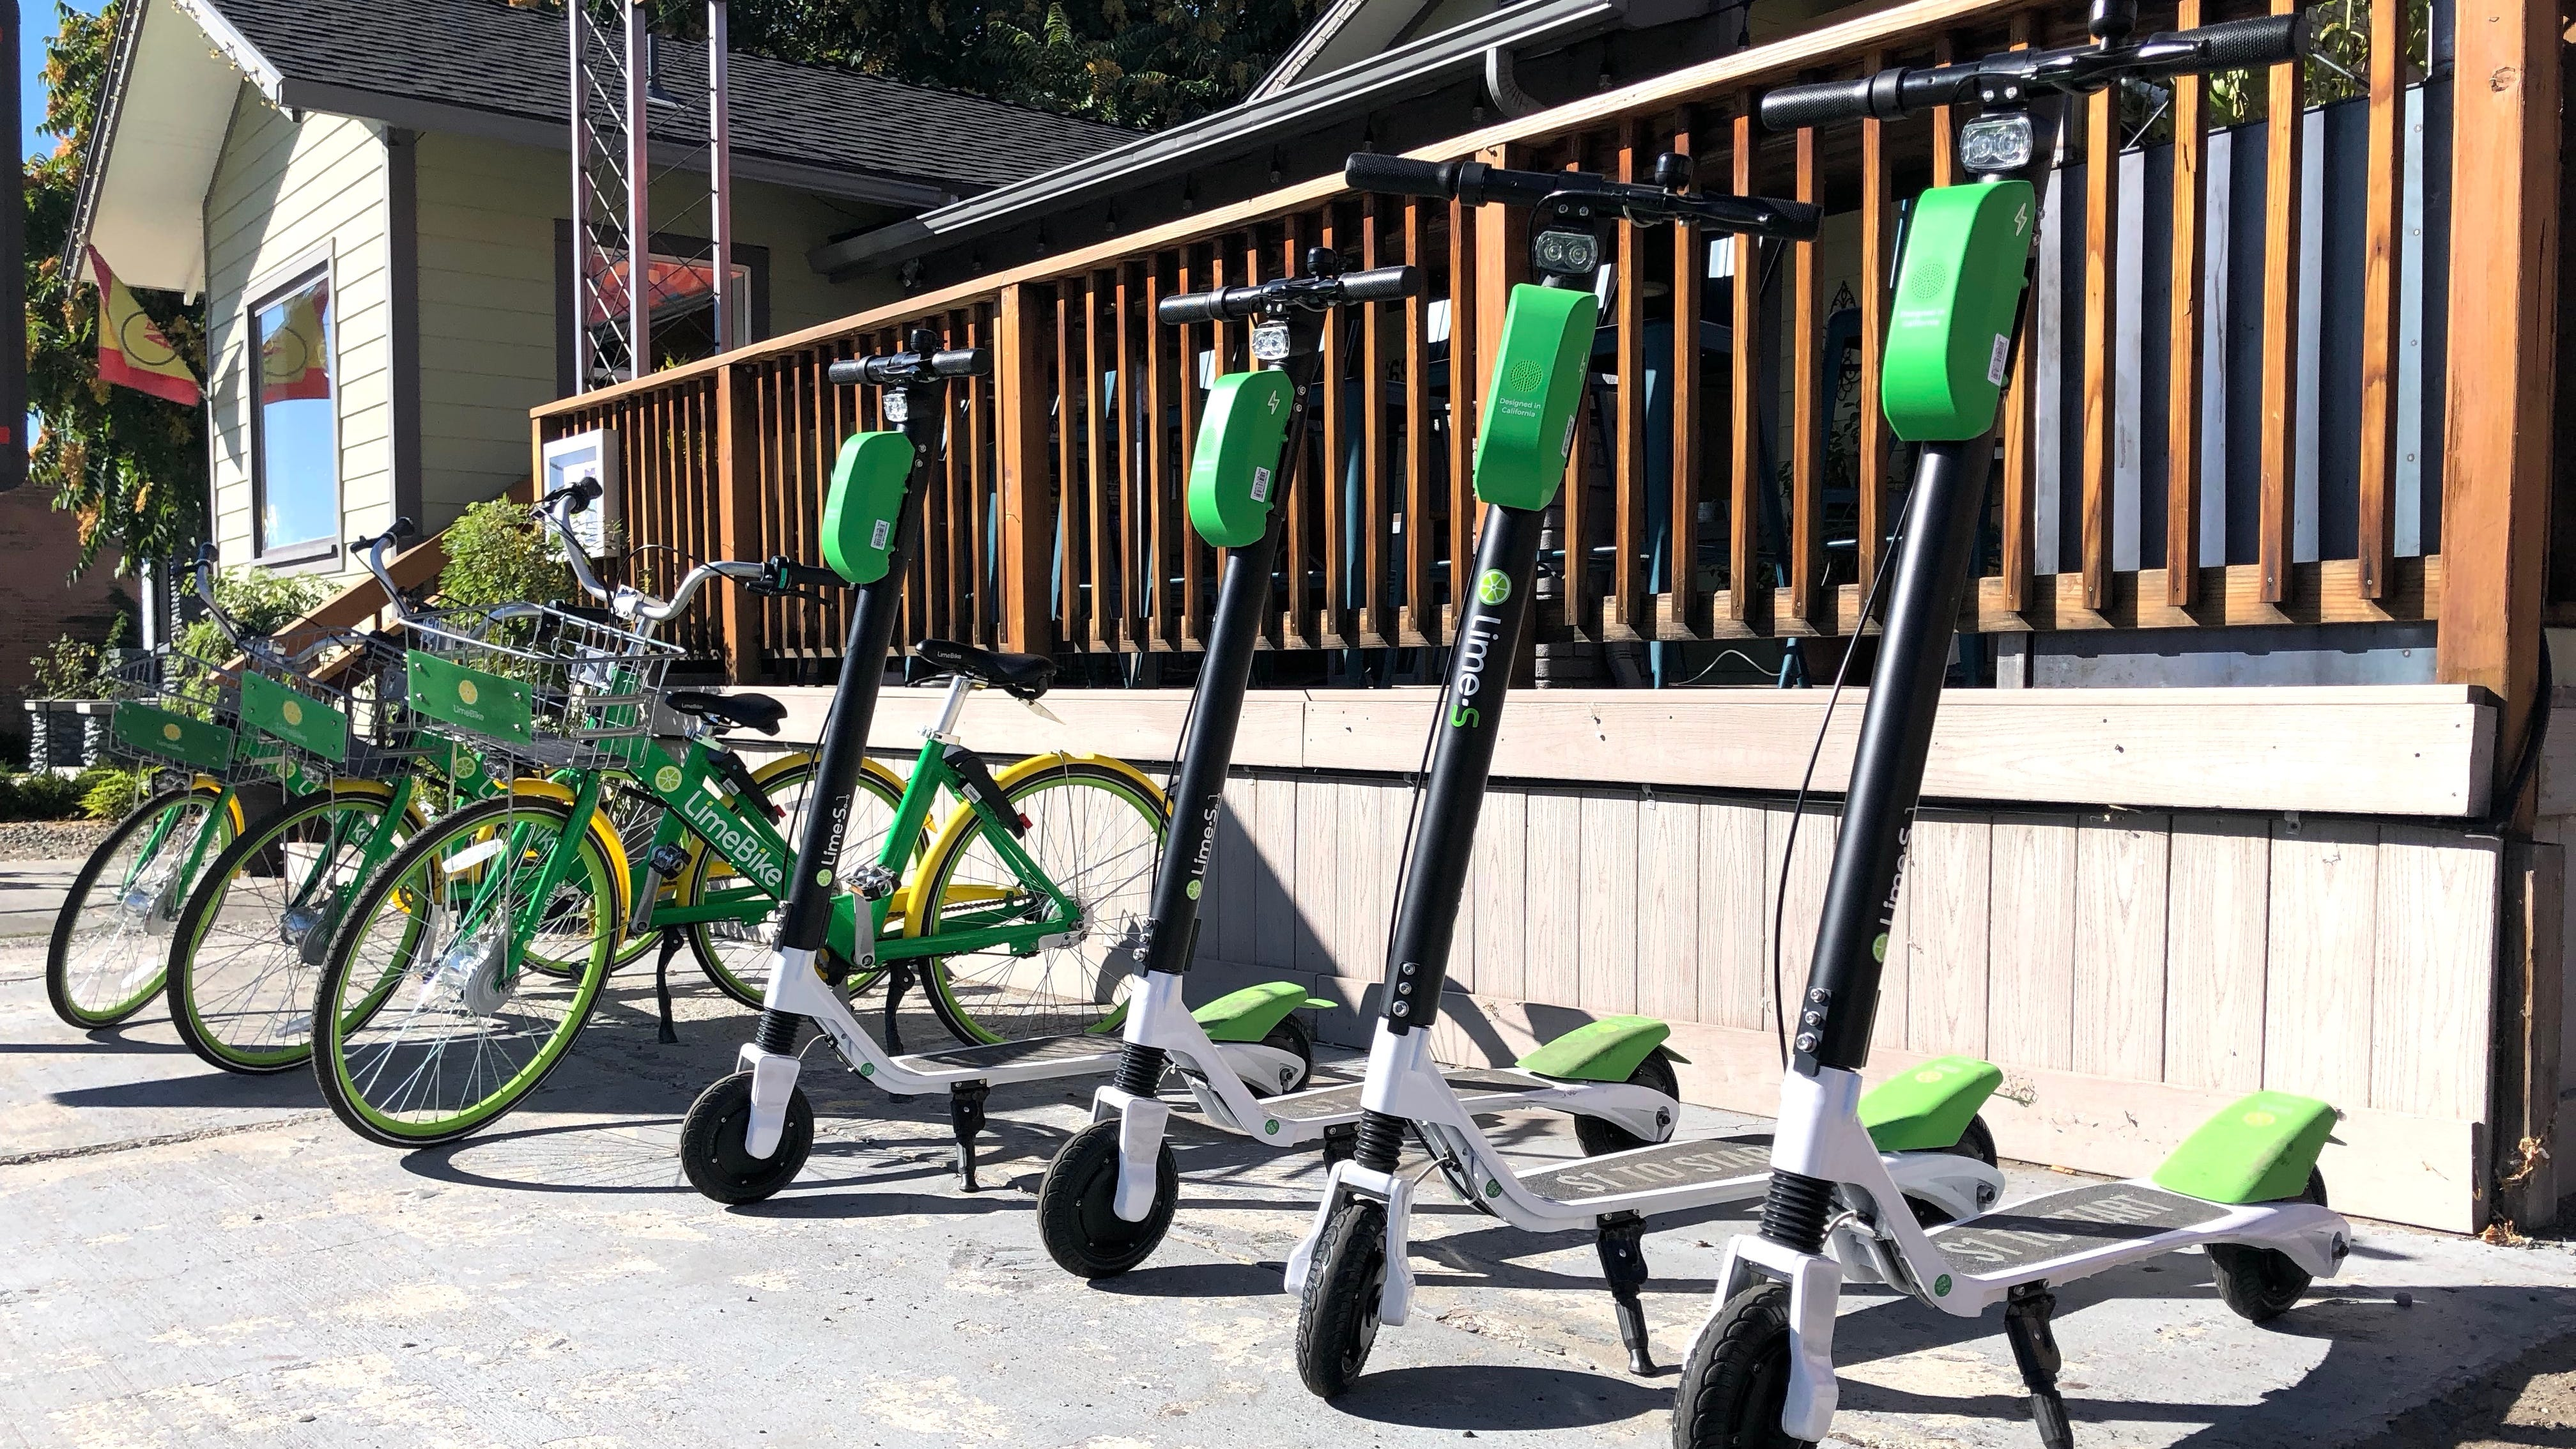 UNR, Sparks, Reno blindsided by Lime Scooter launch — Reno sends cease and desist